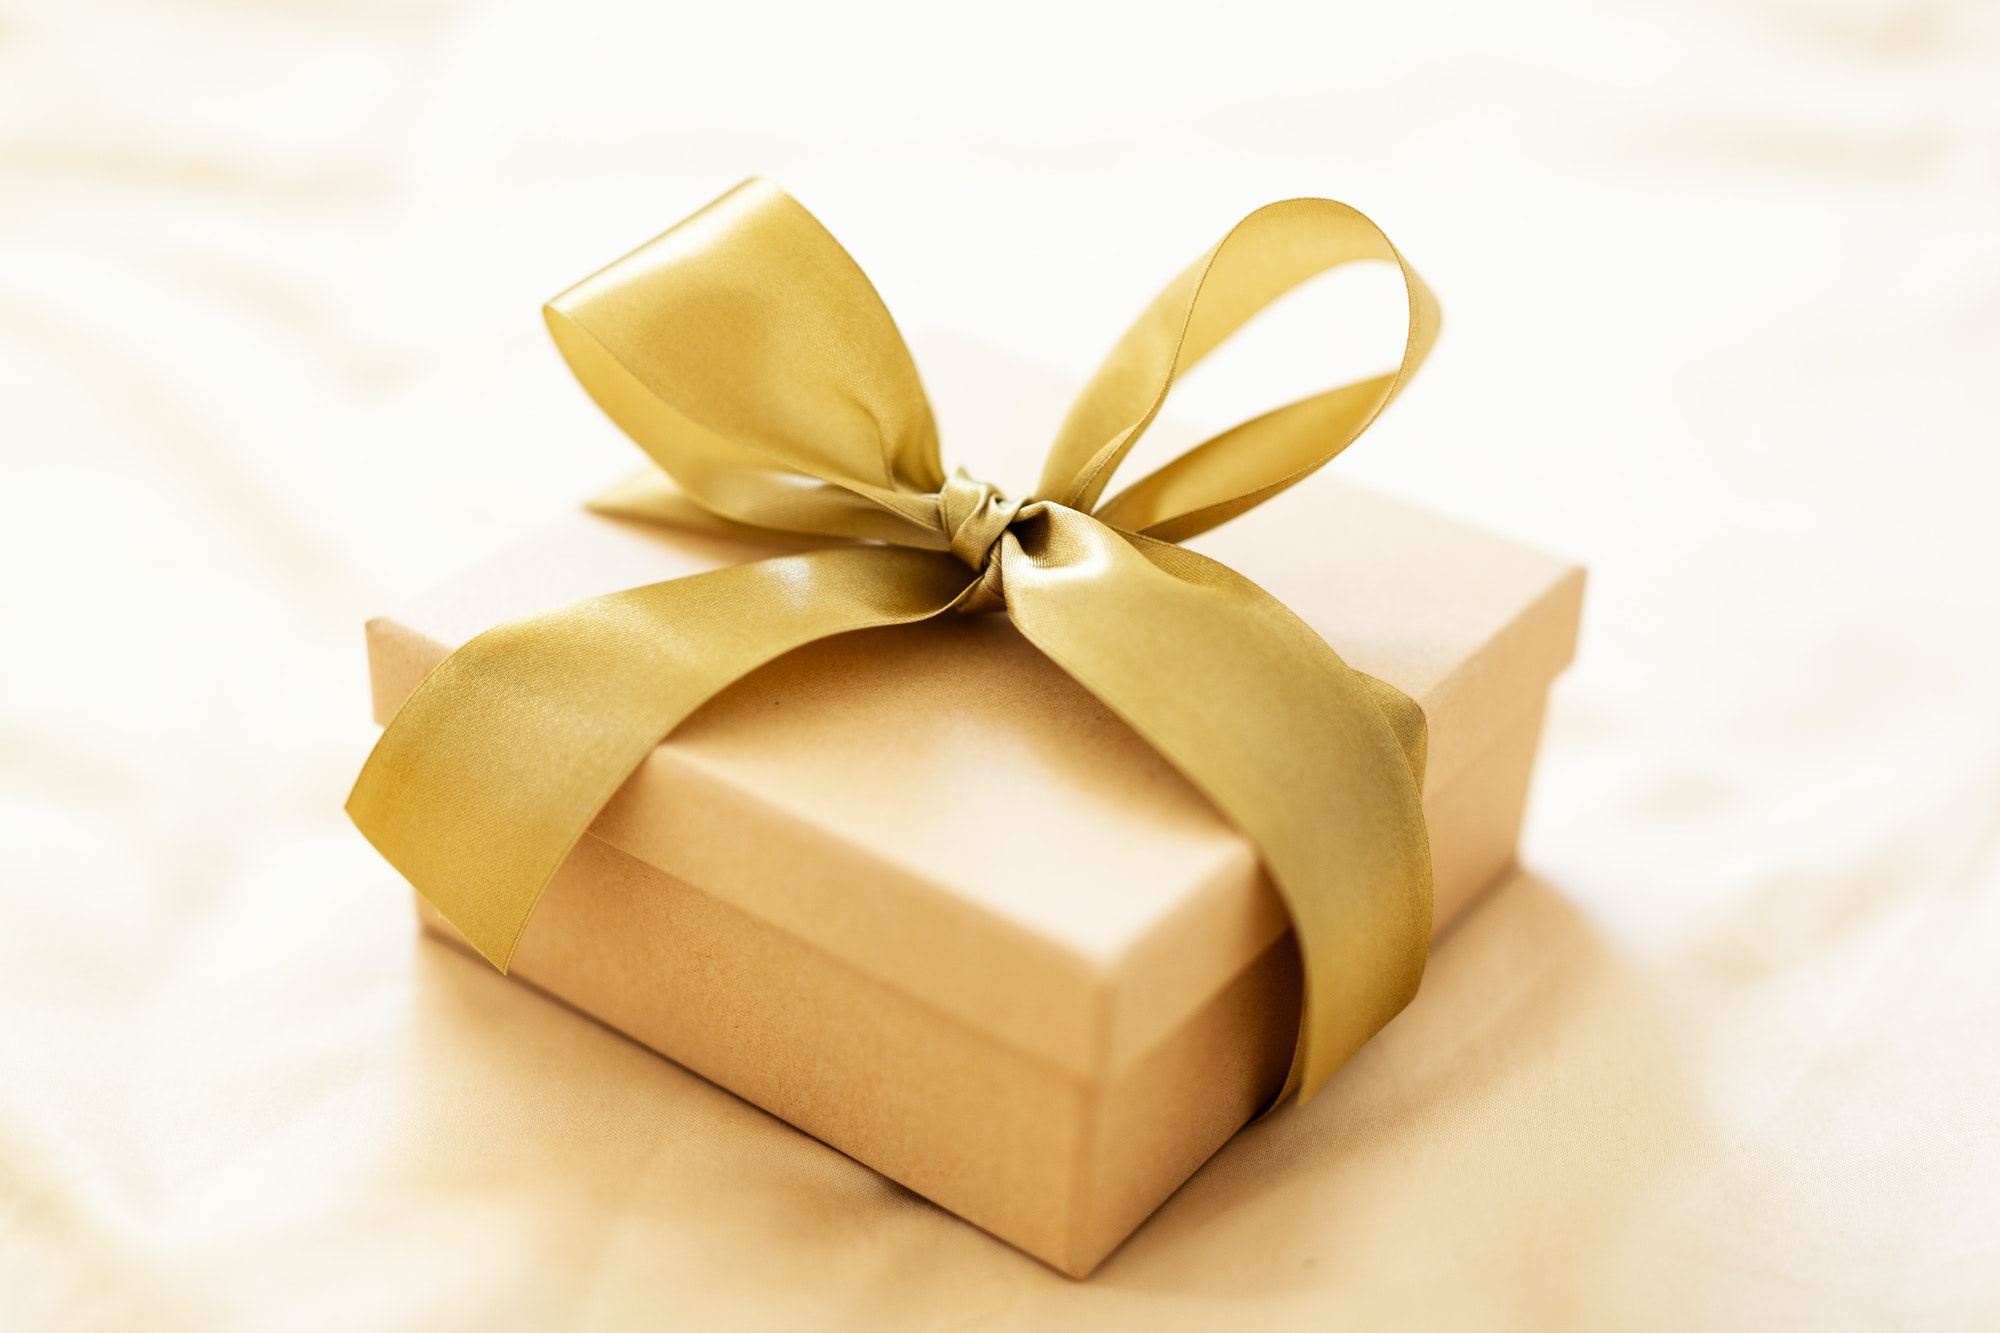 Gift with golden ribbon on golden background